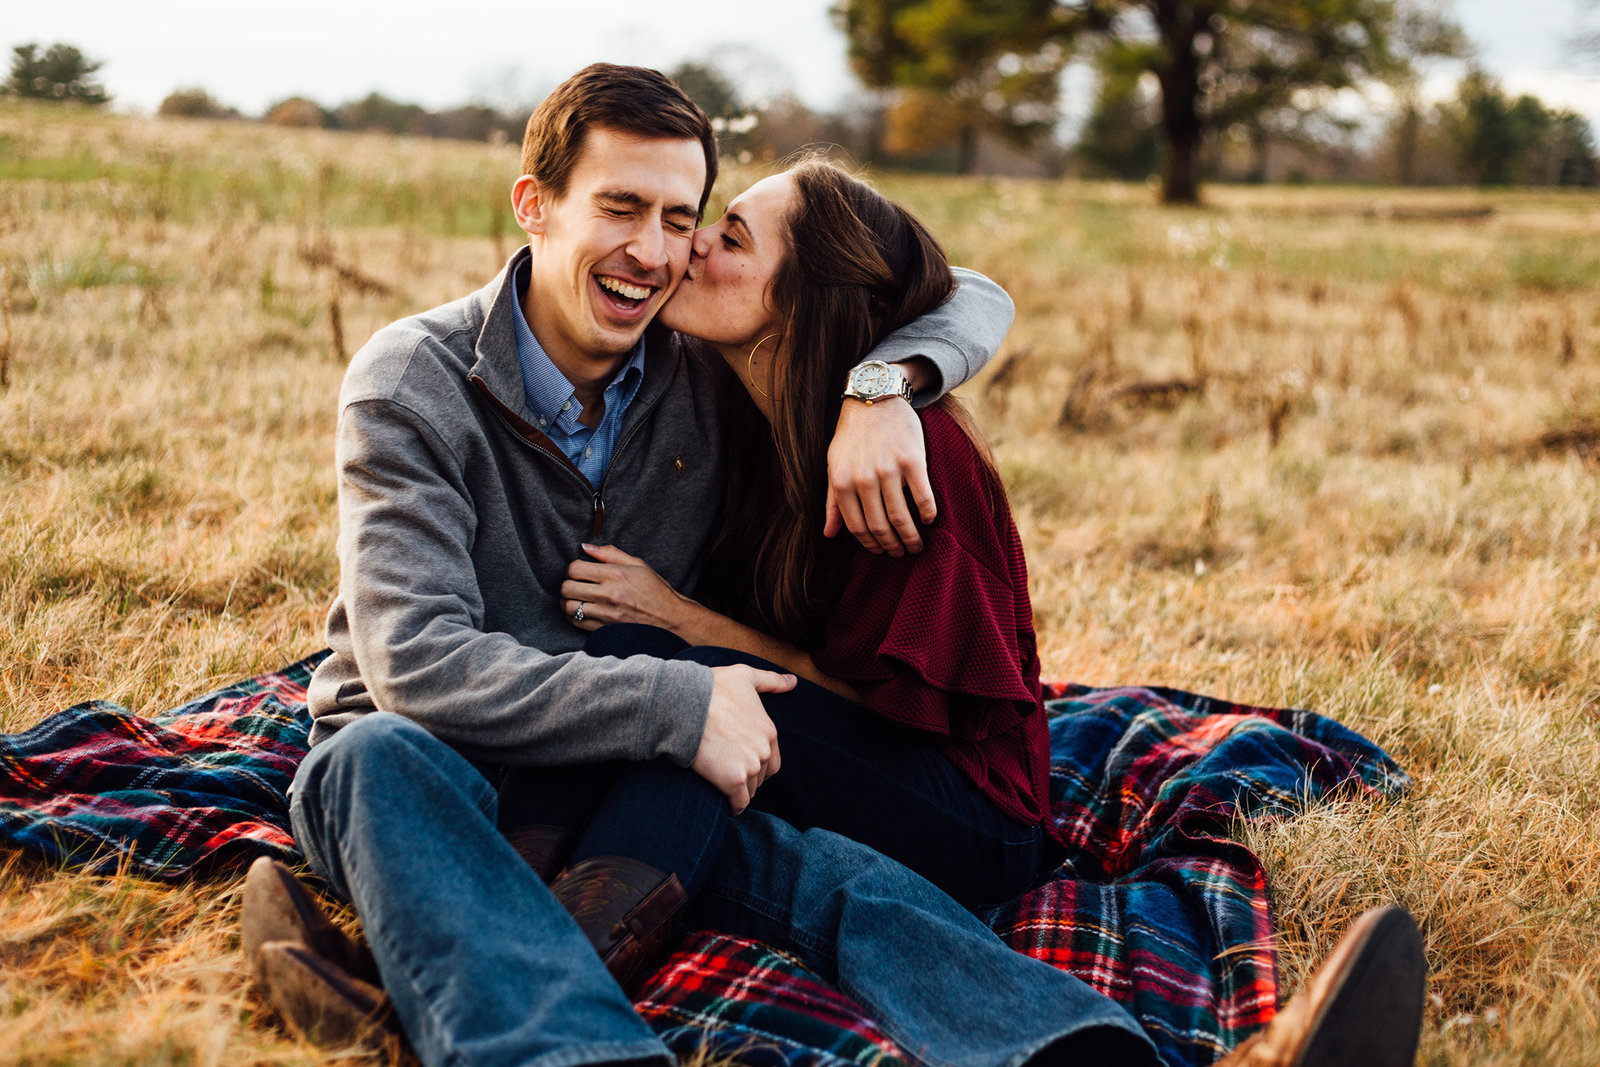 SaraLane-And-Stevie-Photography-Engagement-Rachel-Jordan-Franklin-Tennessee-LR-46